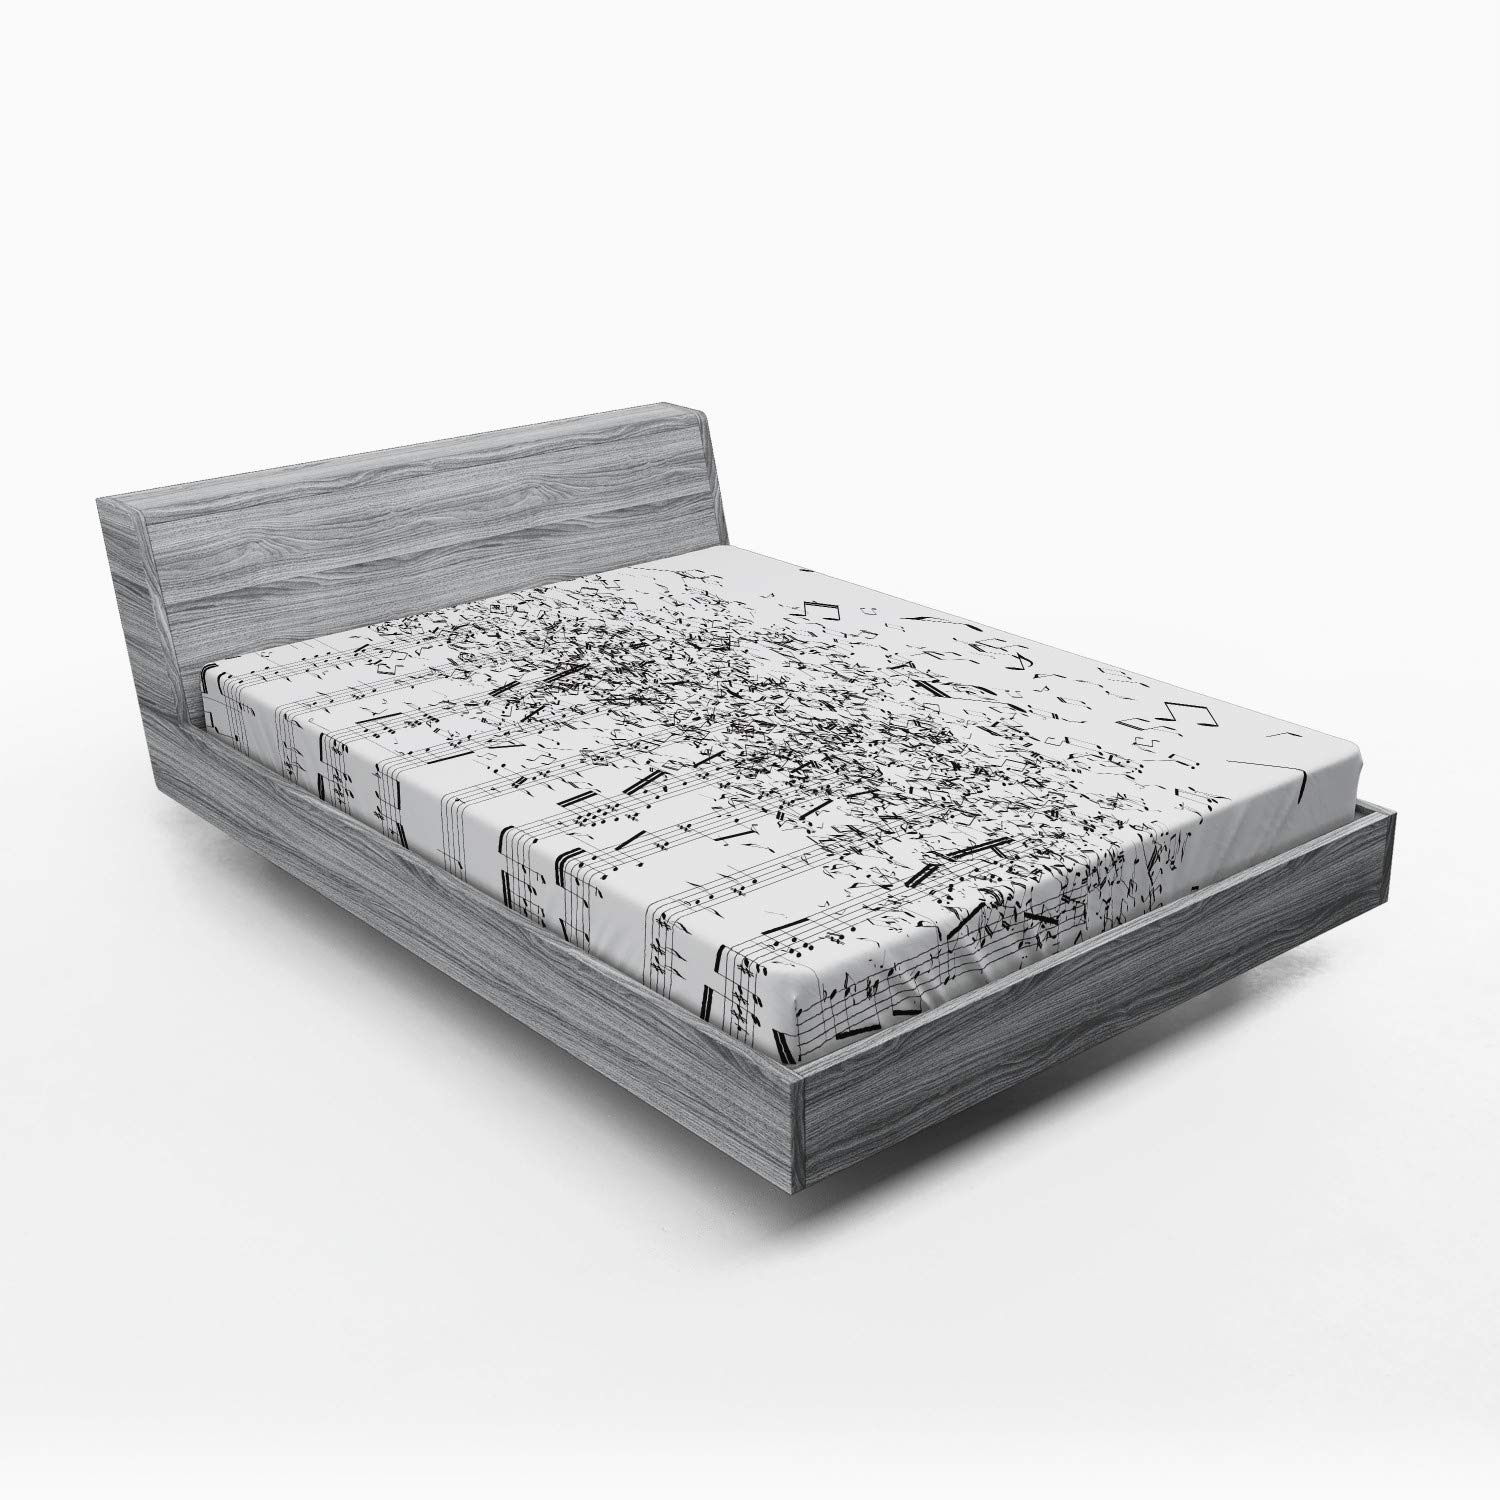 Lunarable Sheet Music Fitted Sheet, Monochrome Dissolving Musical Notes Abstract Pattern Print, Soft Decorative Fabric Bedding All-Round Elastic Pocket, Full Size, Charcoal Grey